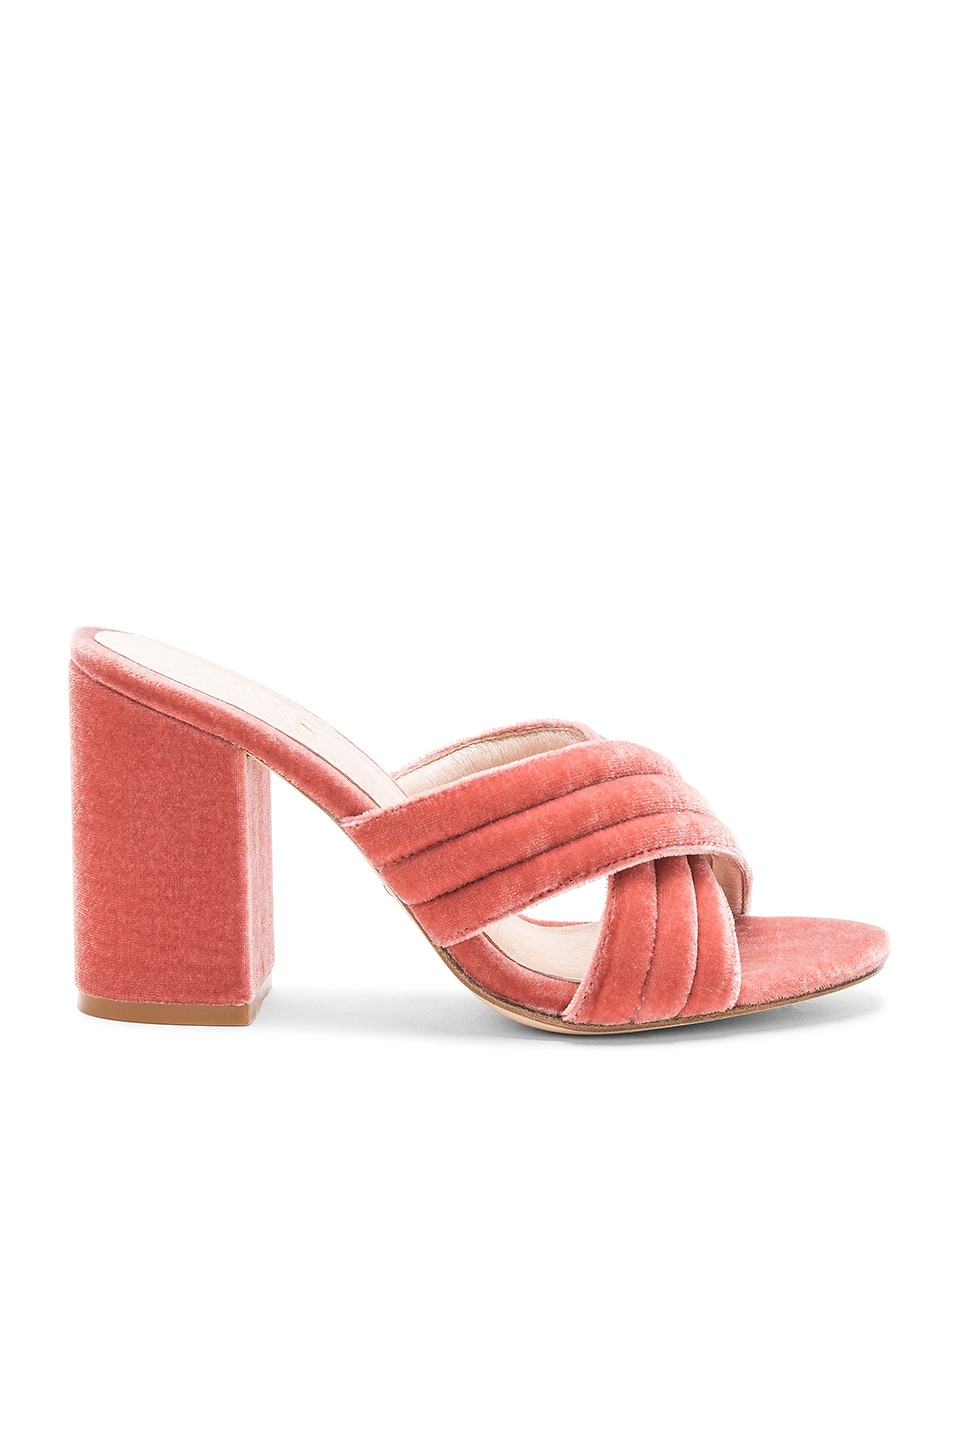 RAYE Bella Mule in Blush Velvet